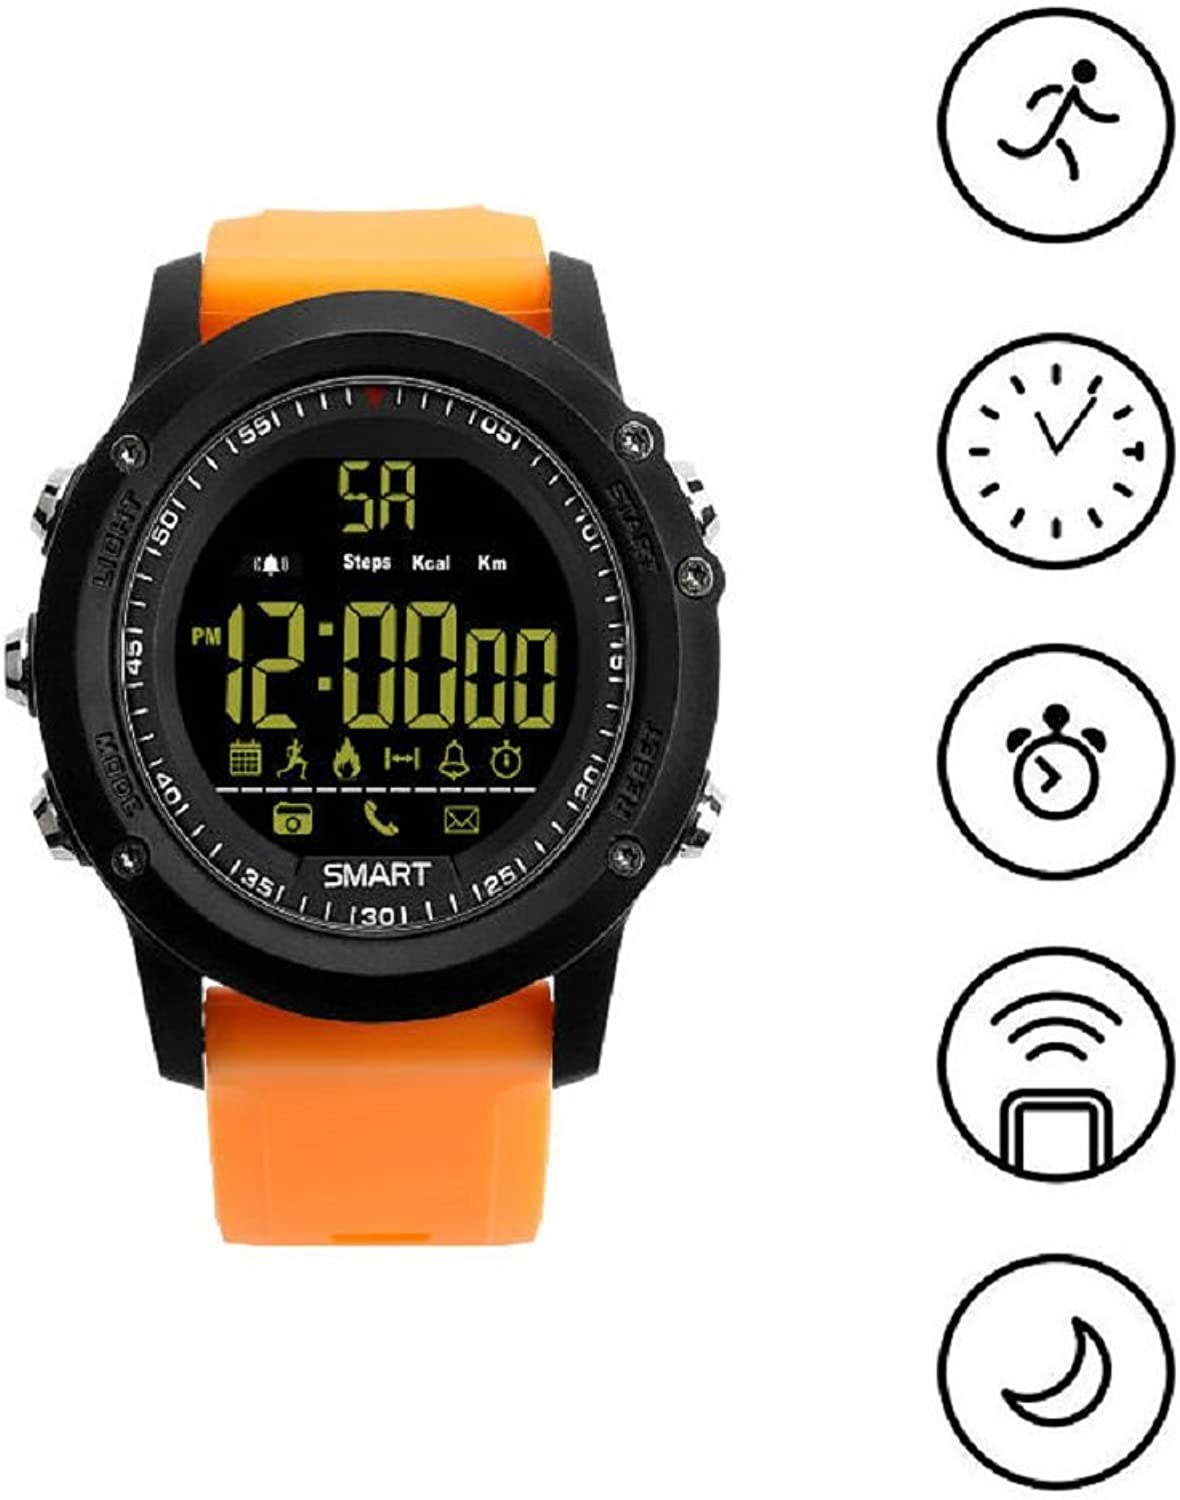 Sporting Activities Tracker Fitness Tracker Remote Camera Watchorange